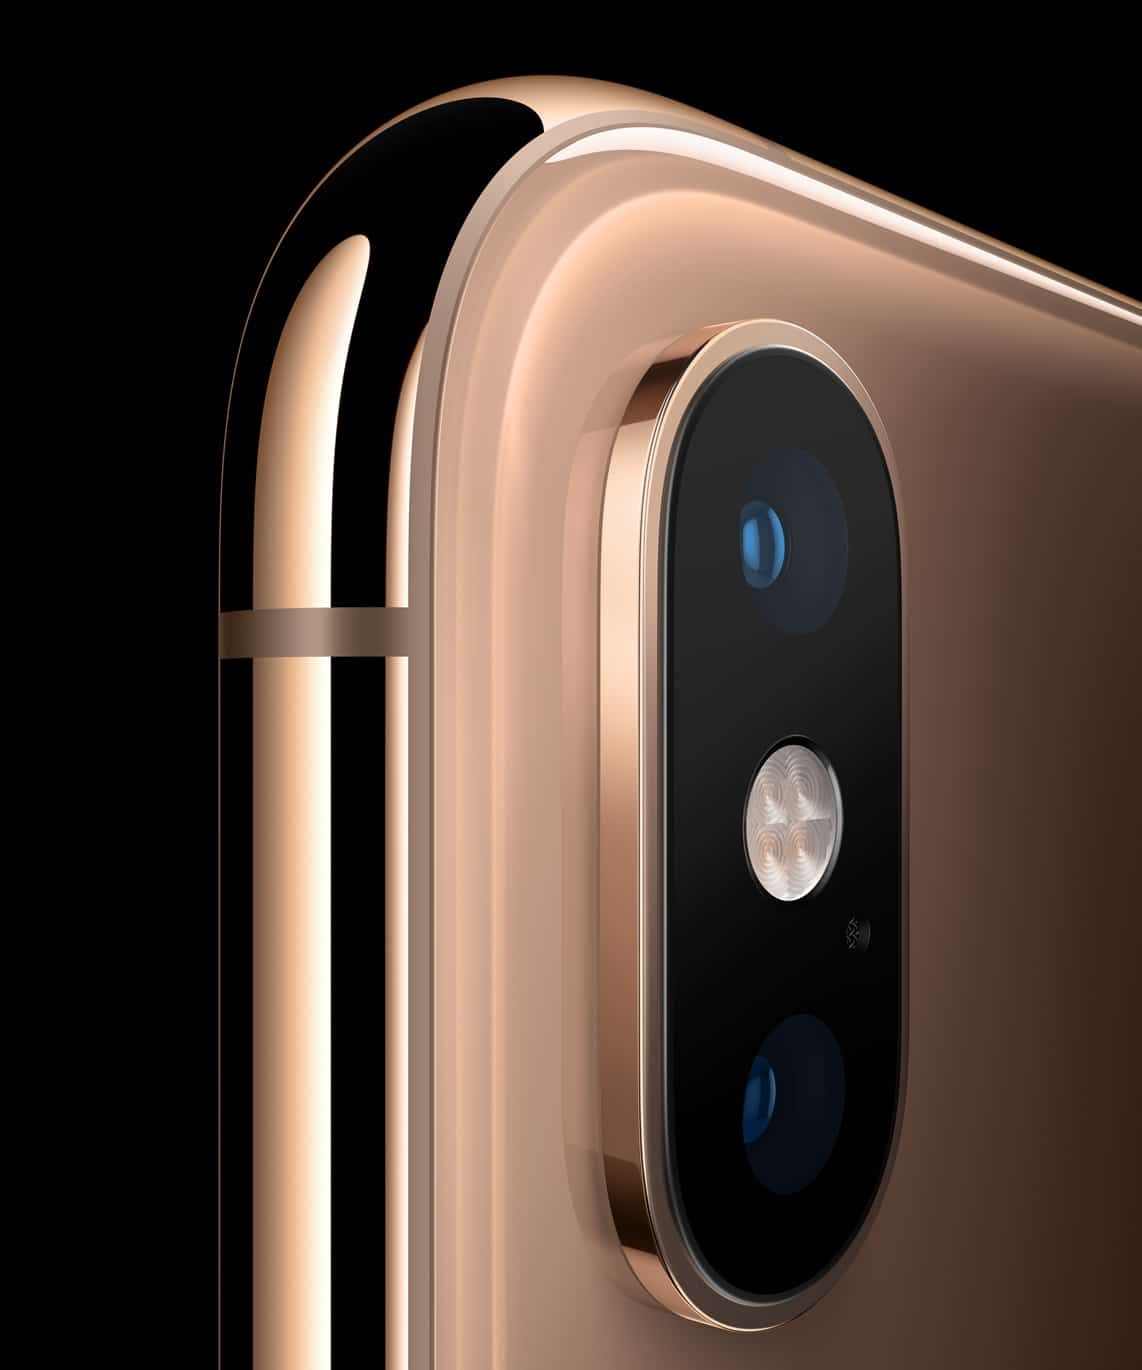 Speciale Apple: tutto su iPhone Xs, Xs Max, XR e Watch Serie 4